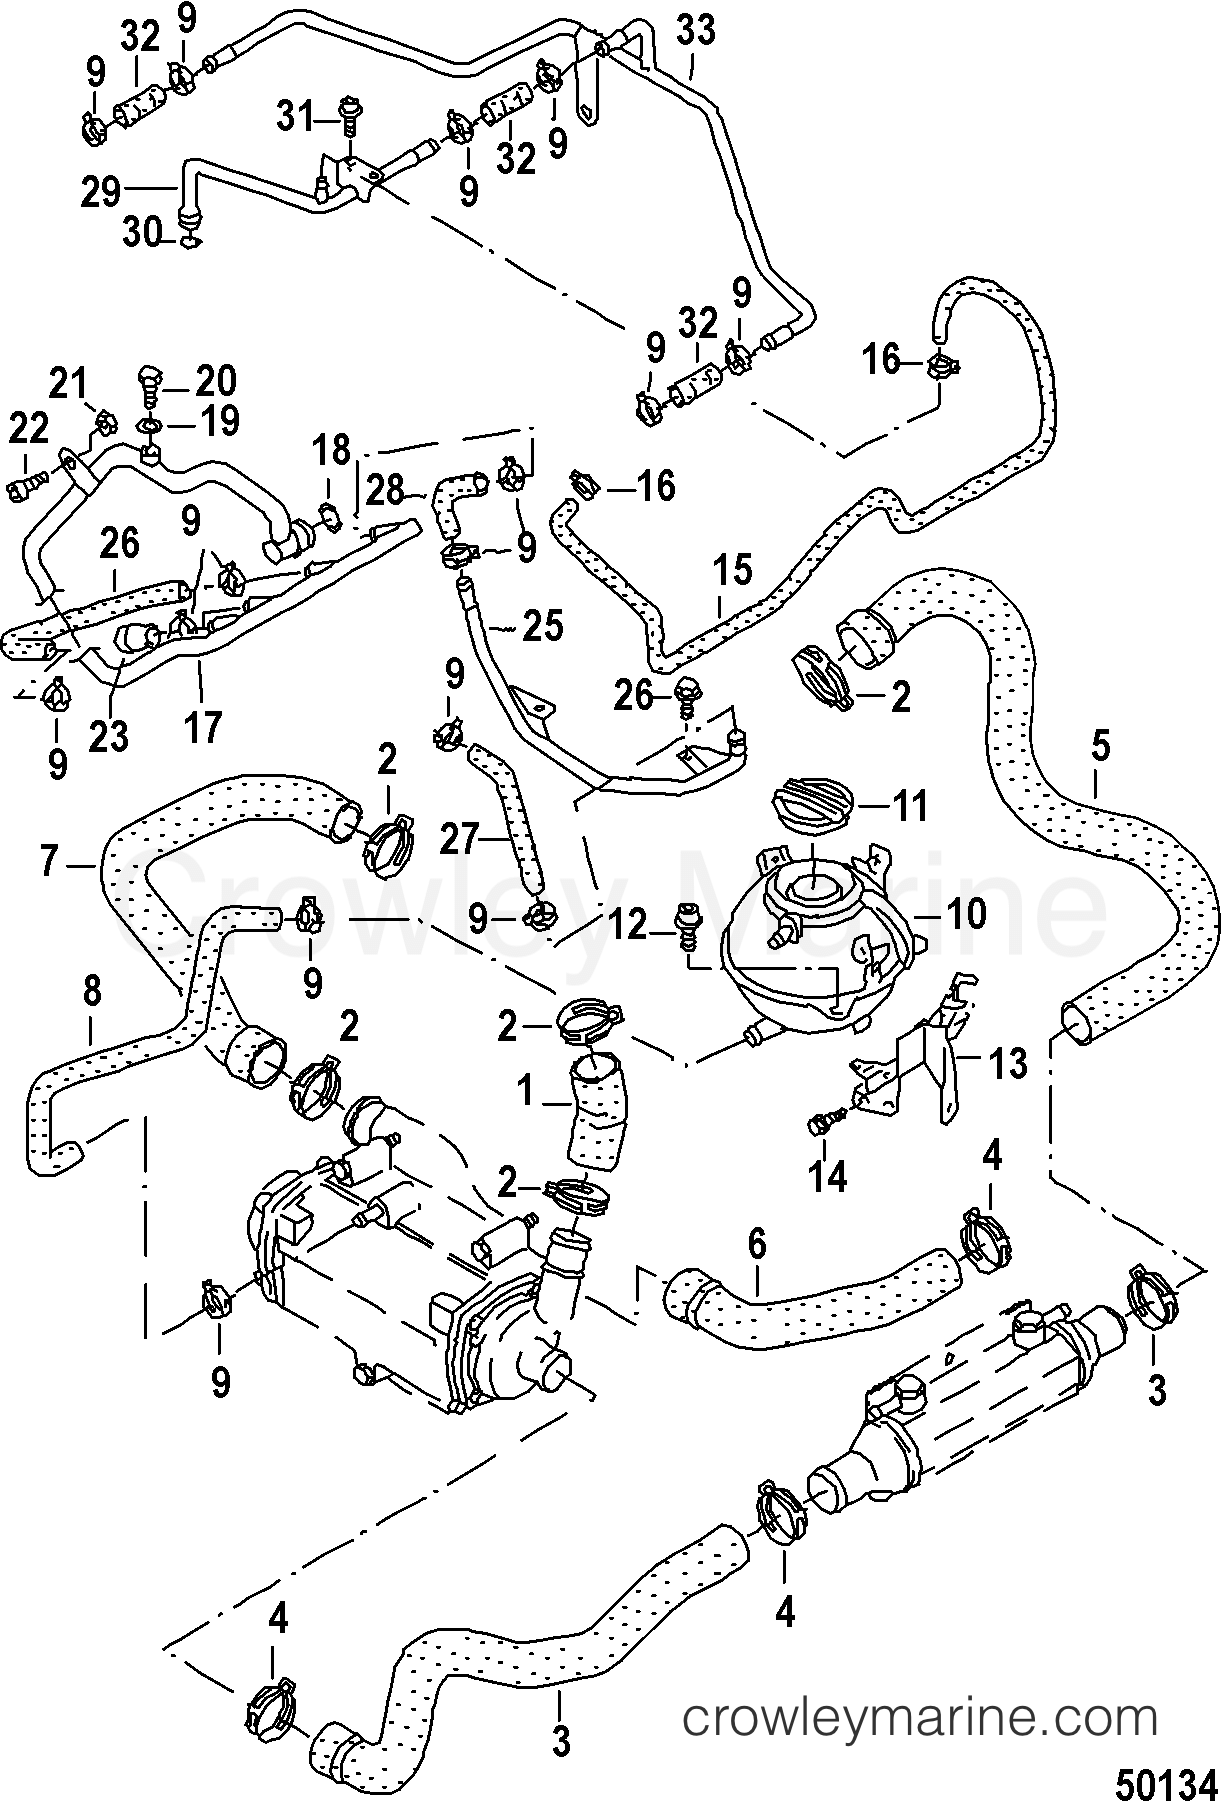 water hoses and pipes 2013 mercruiser 3 0l tdi 4d300007d crowley Mercruiser Impeller Diagram 2013 mercruiser 3 0l tdi 4d300007d water hoses and pipes section